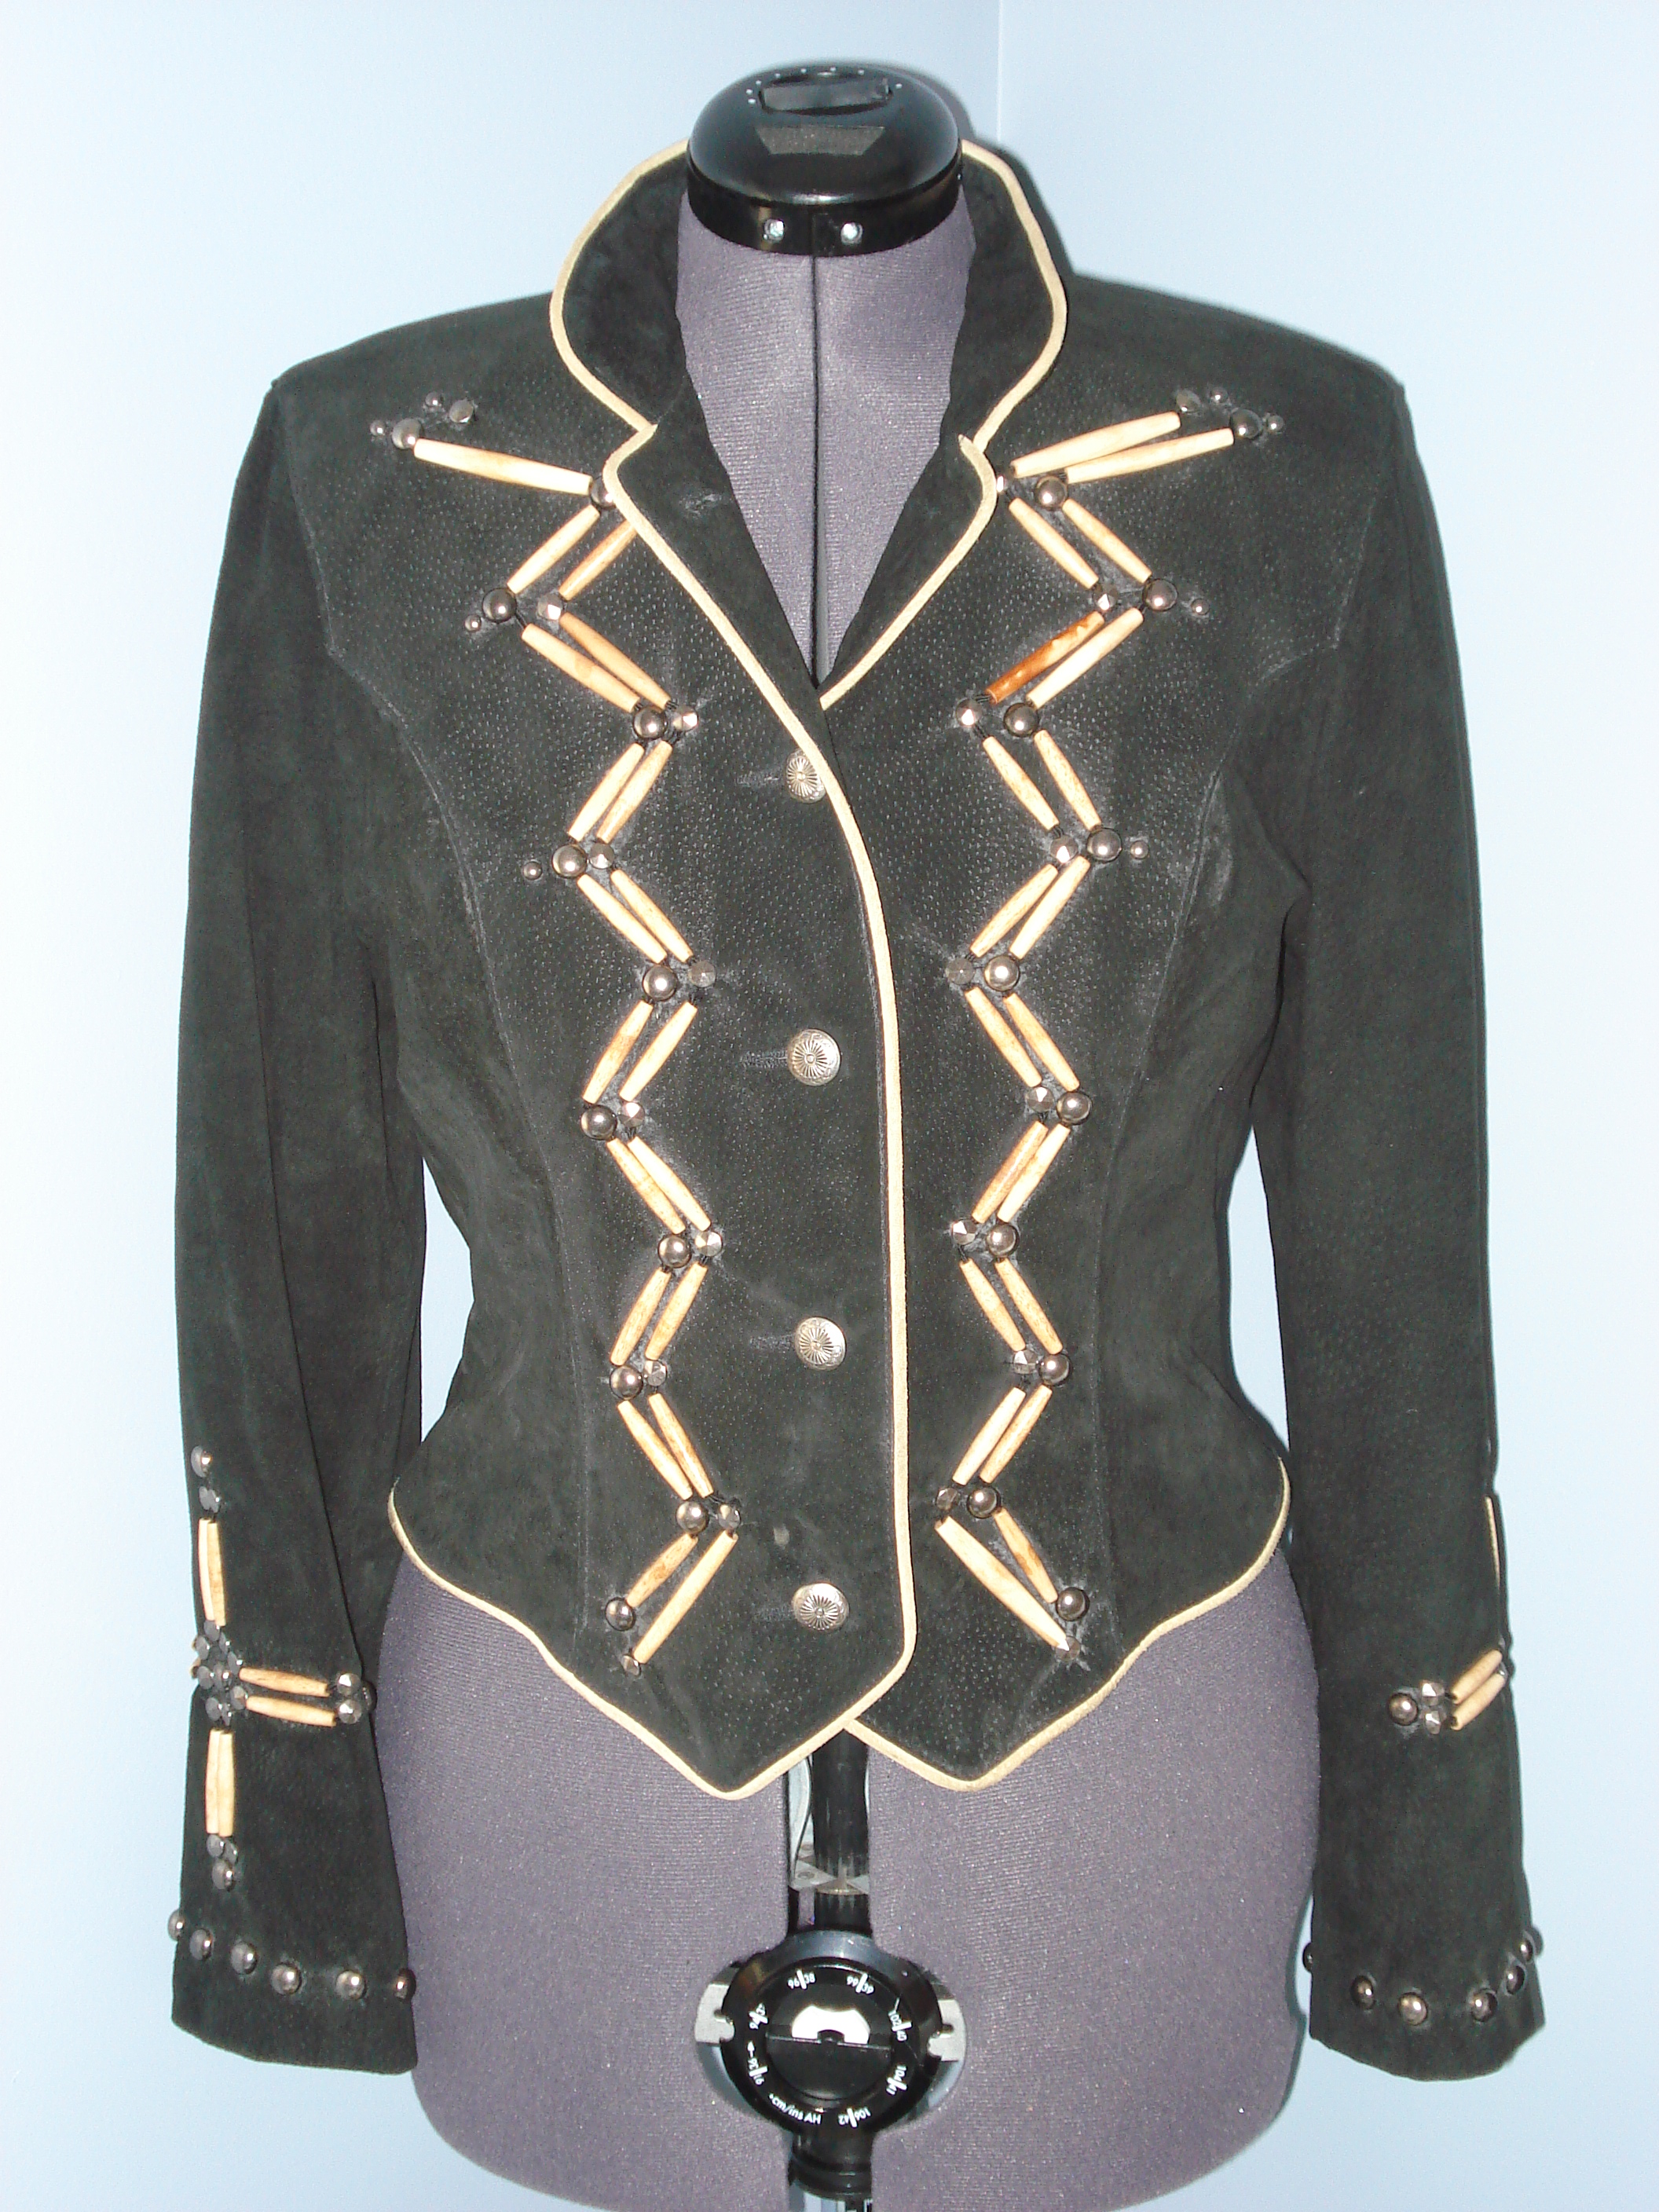 Shop for German military jackets online - Read Reviews, Compare